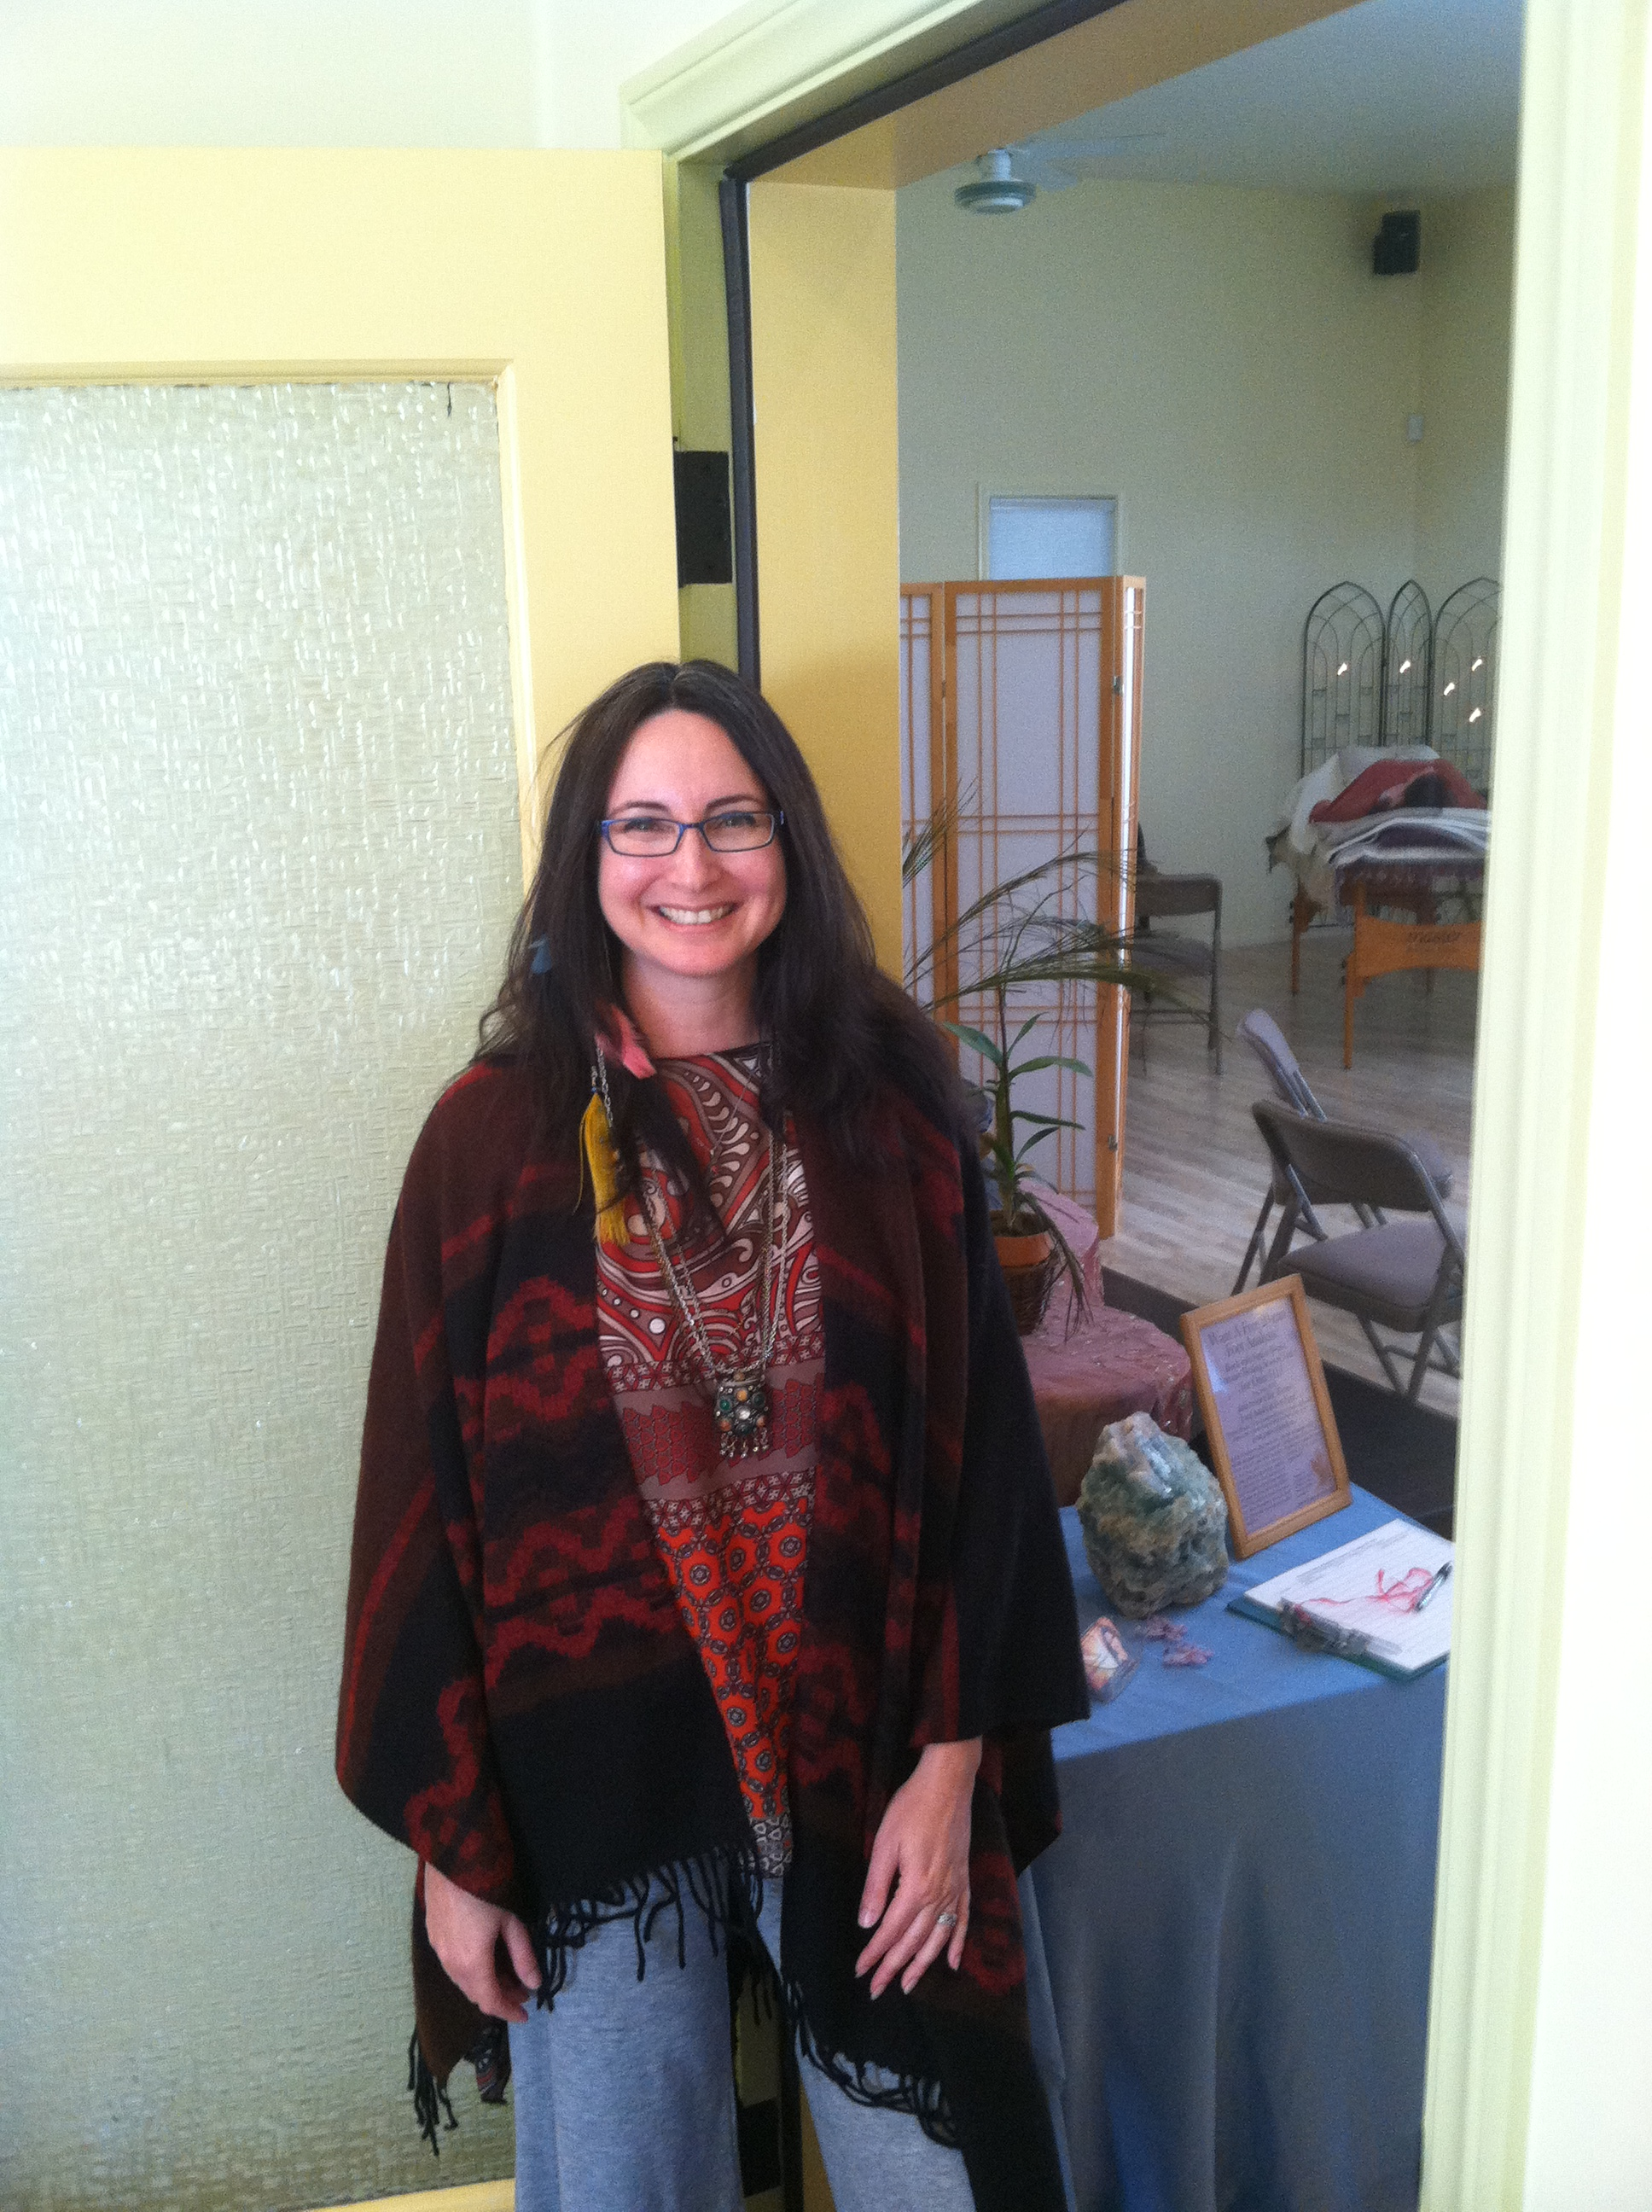 Getting ready for healing at the Ojai Healing Fair 2013